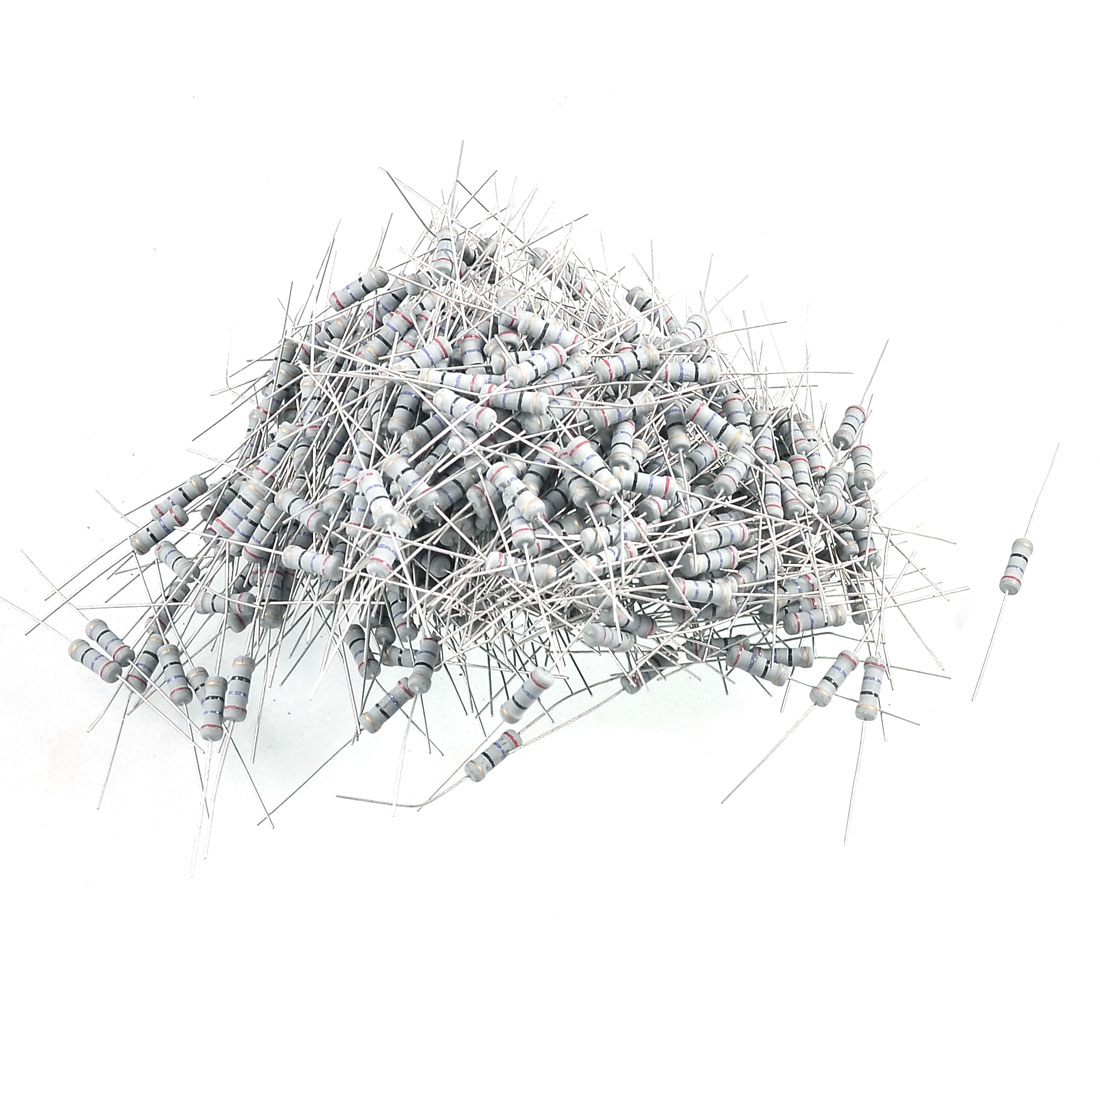 350V 1W Watt 27 Ohm 5% Axial Carbon Film Resistor 500 Pcs